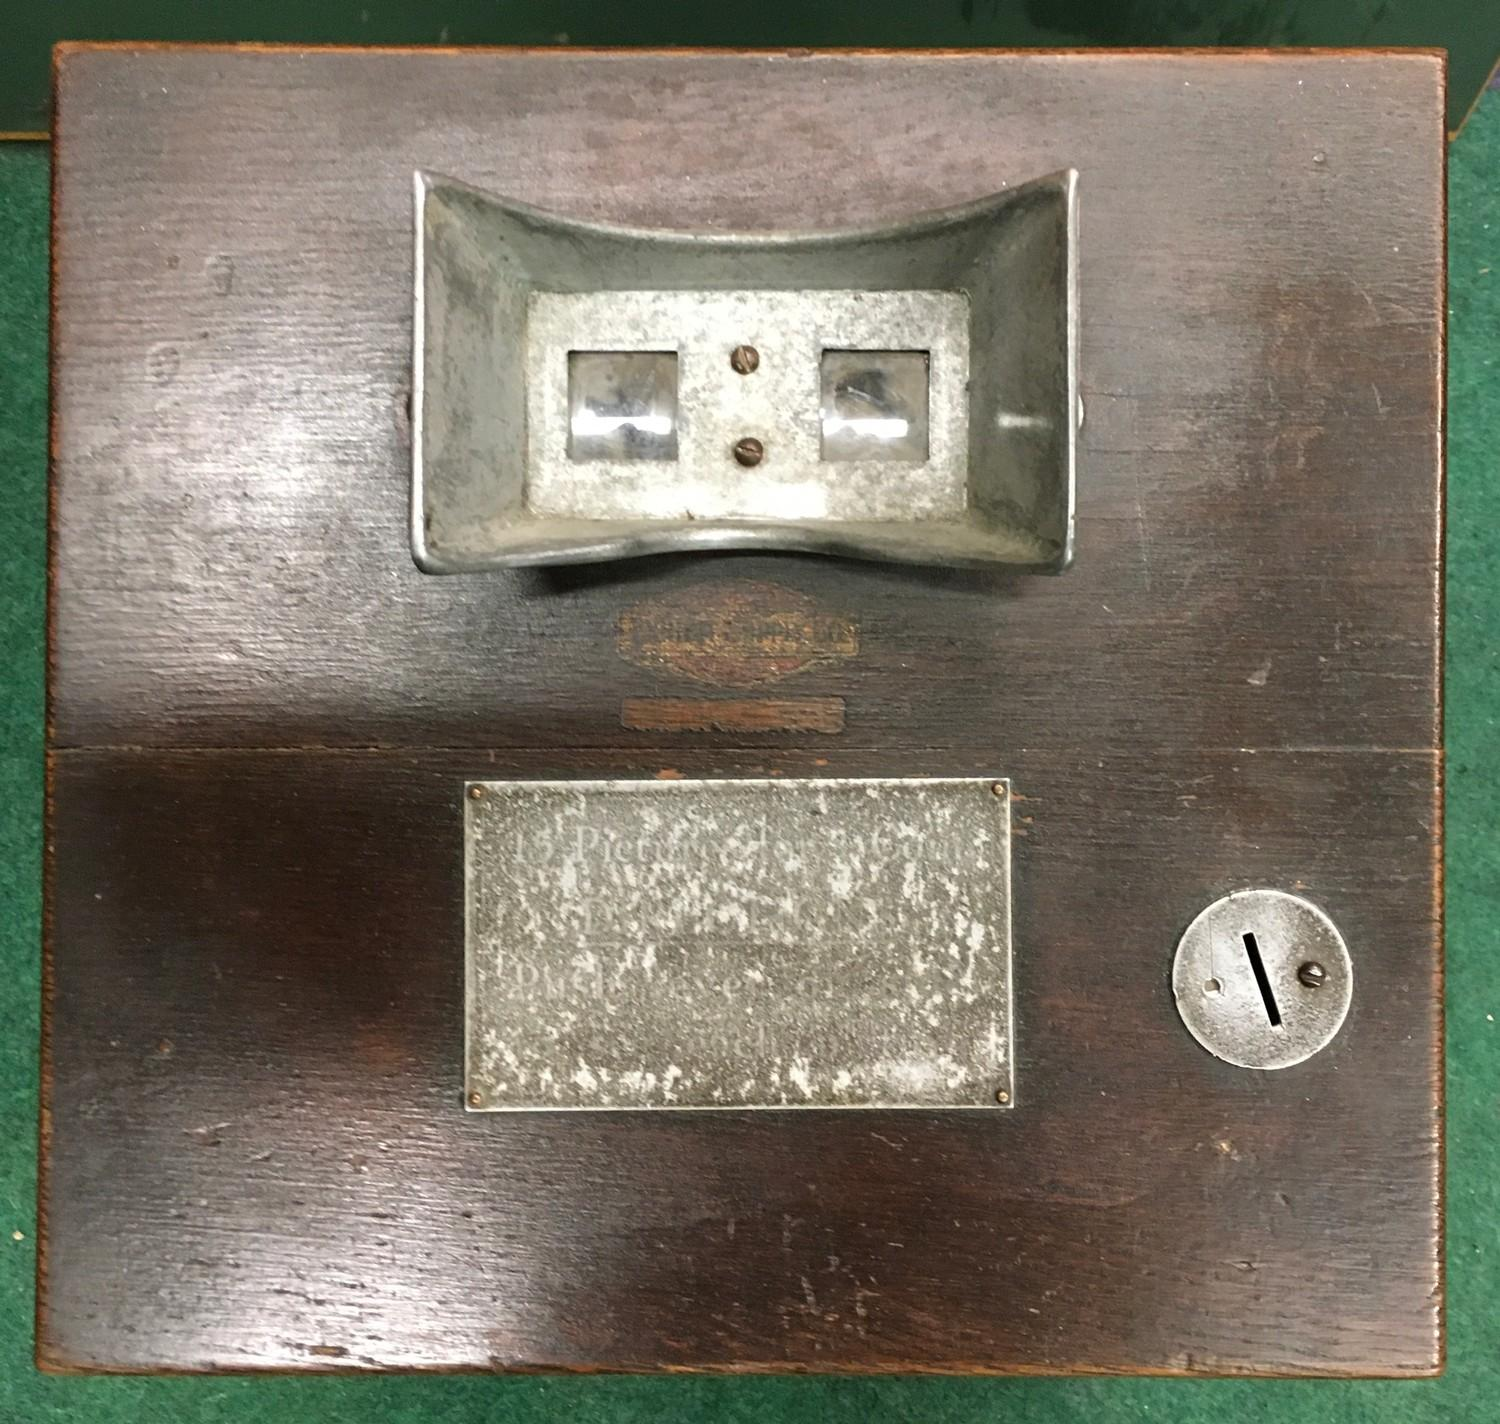 Edwardian counter top Picture Viewer in wood case. Coin operated. Works on old 6d coin or 1 cent. - Image 2 of 4